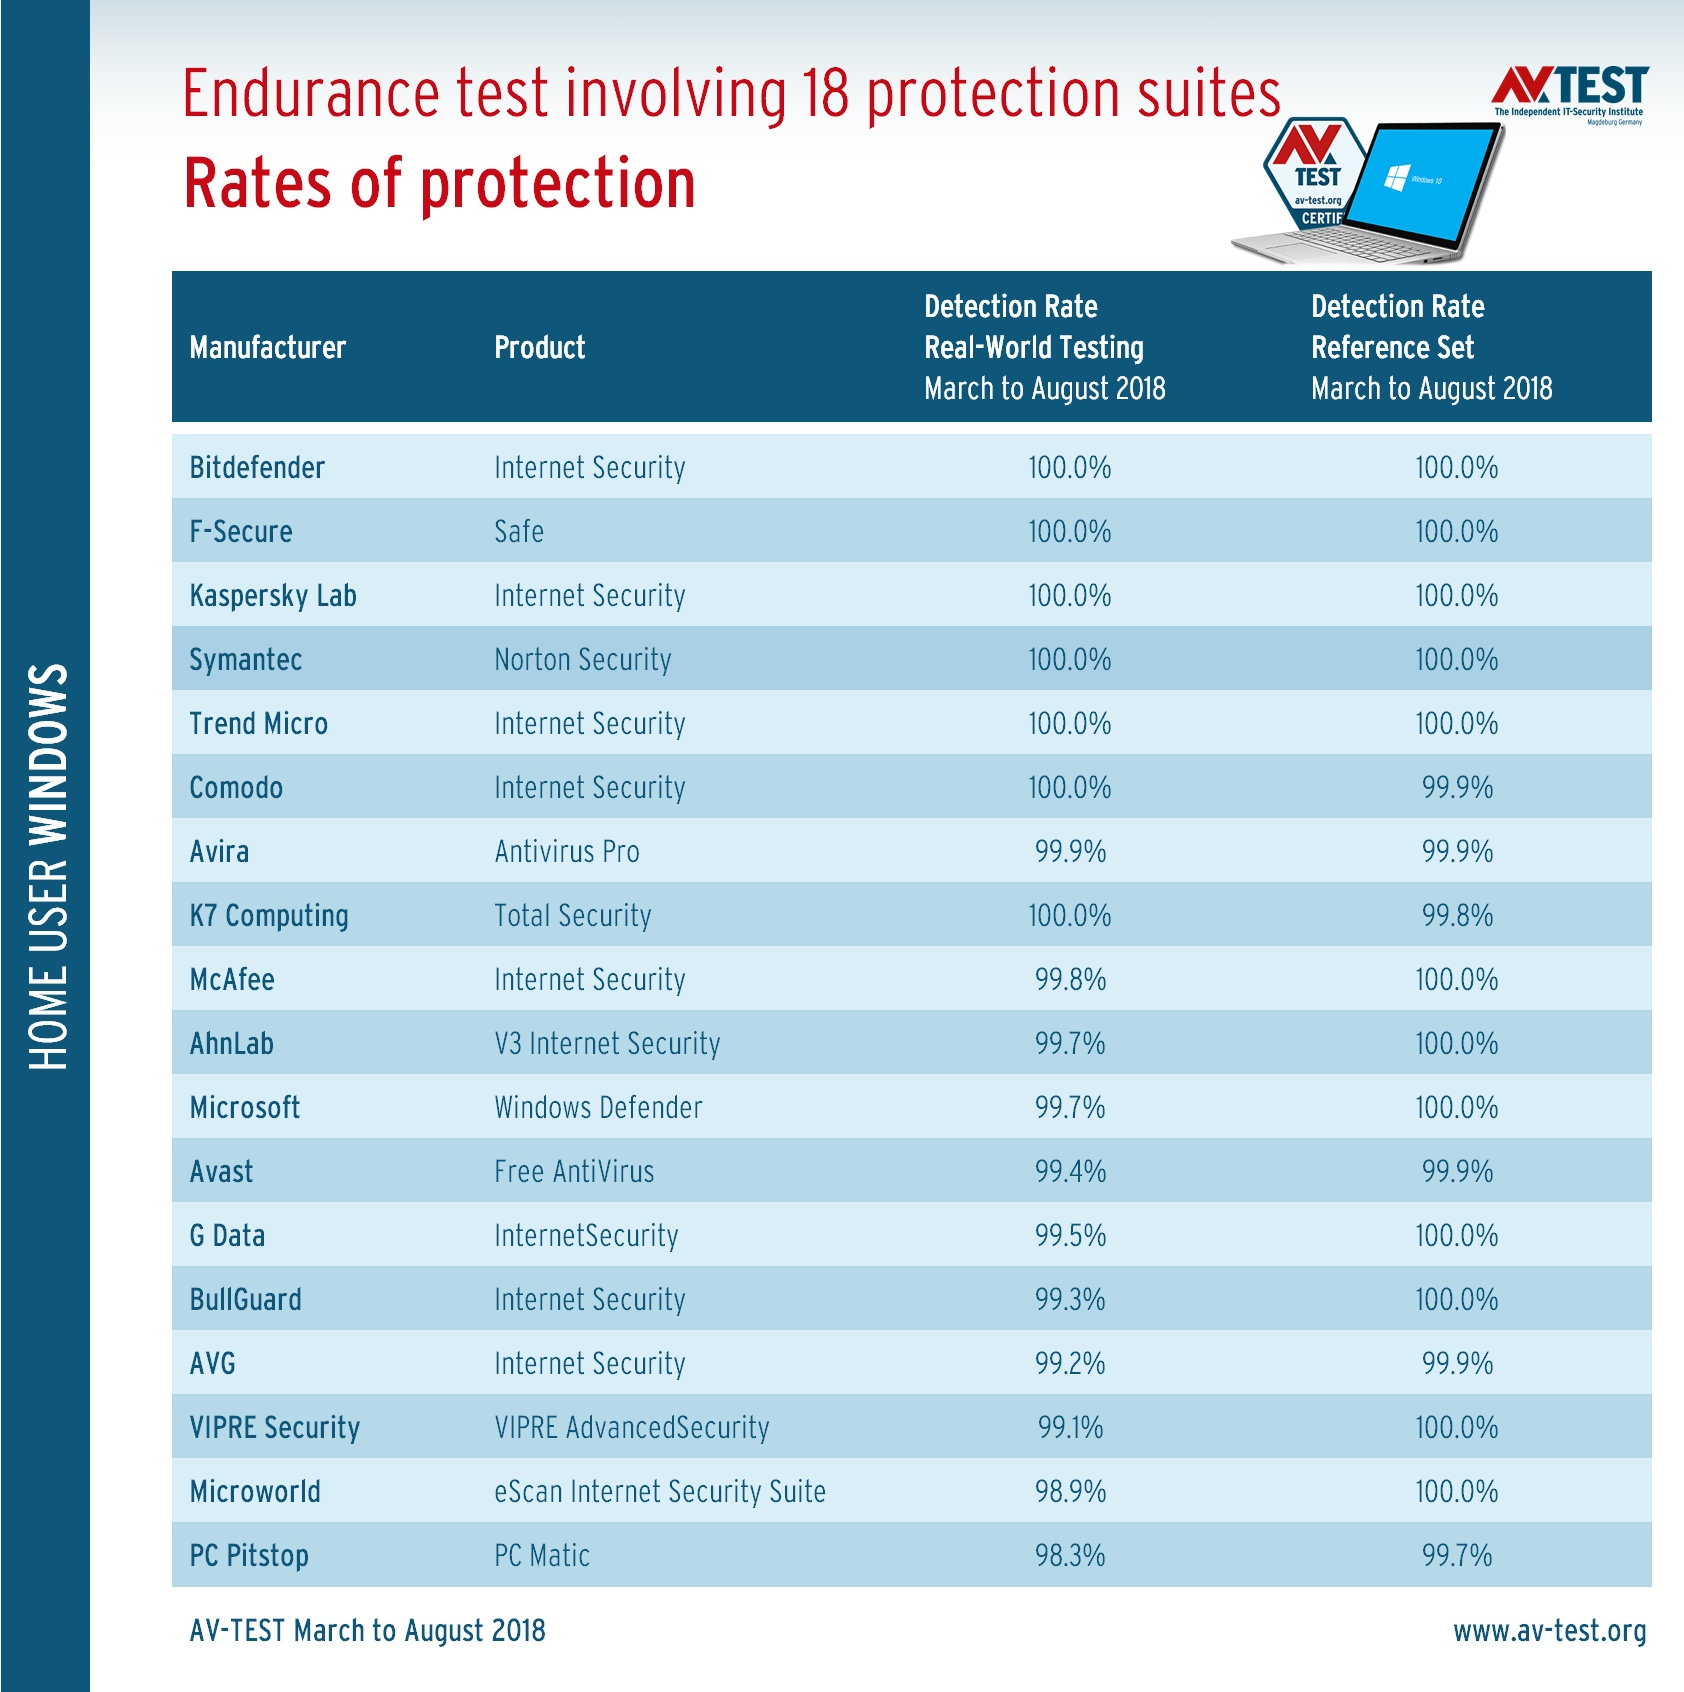 Endurance Test: Which Package Protects Windows the Best? | AV-TEST